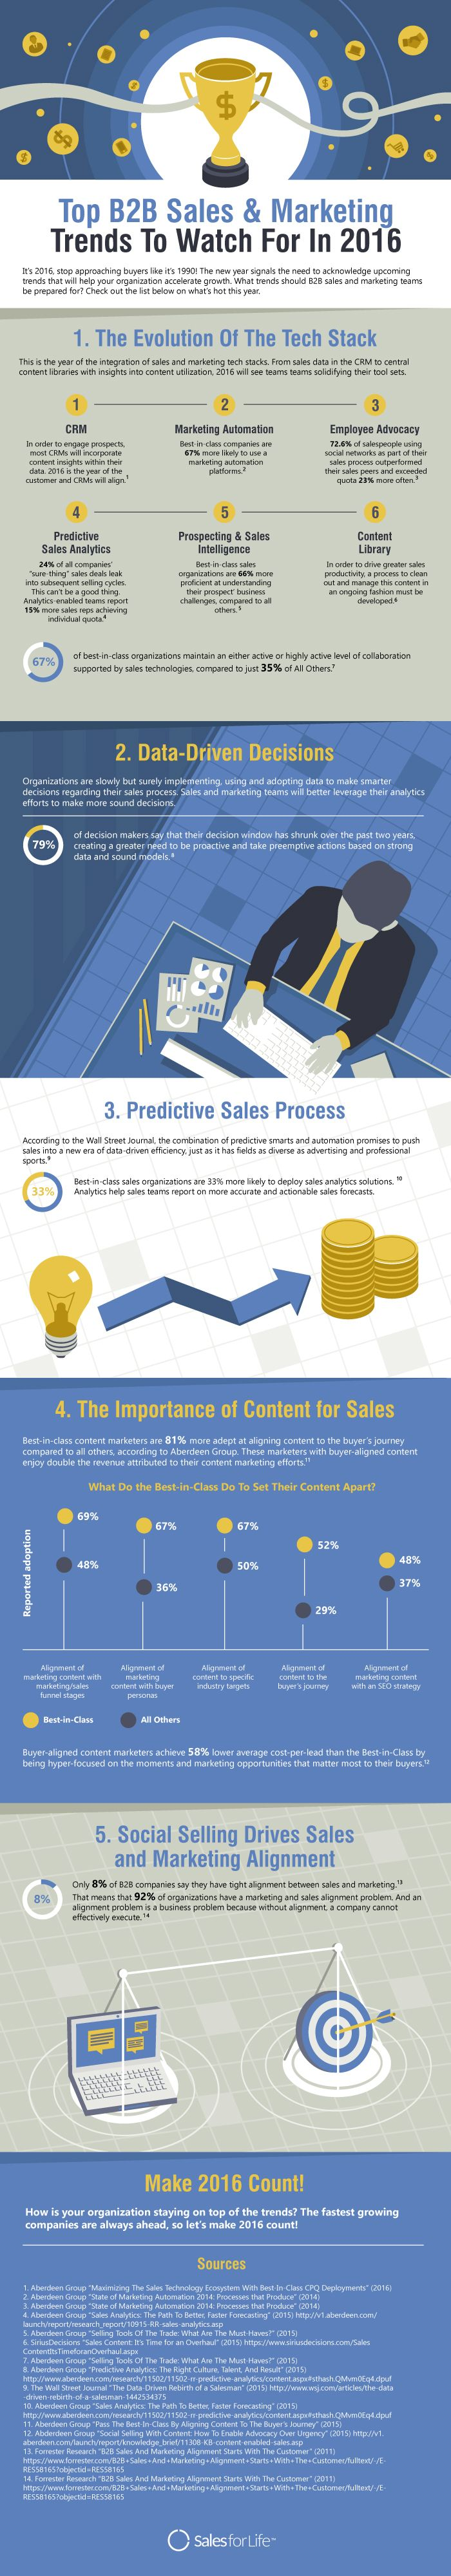 Top 5 B2B Sales And Marketing Trends In 2016 #infographic #B2B #Marketing